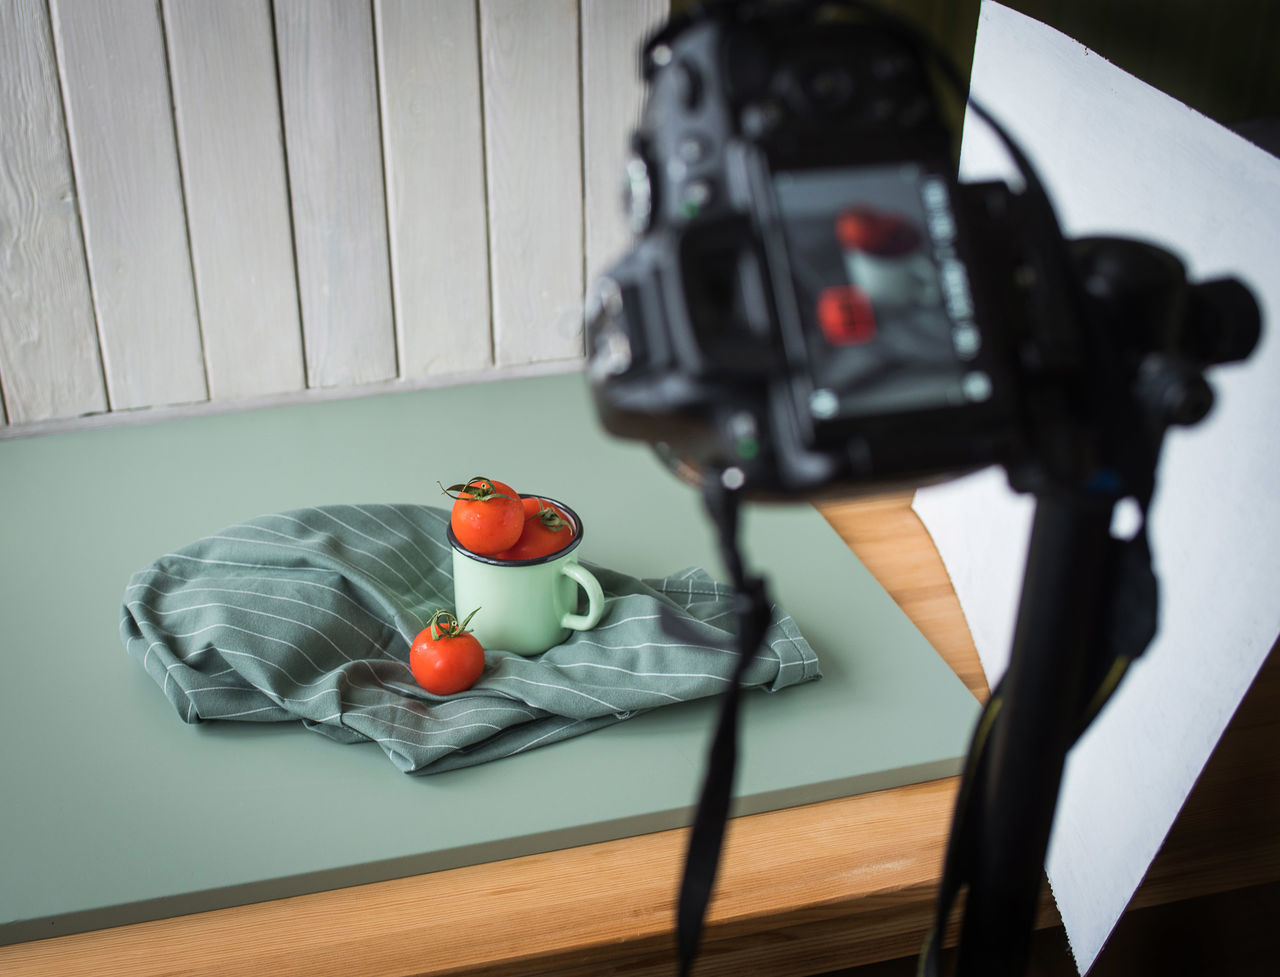 High angle view of tomatoes and mug on table